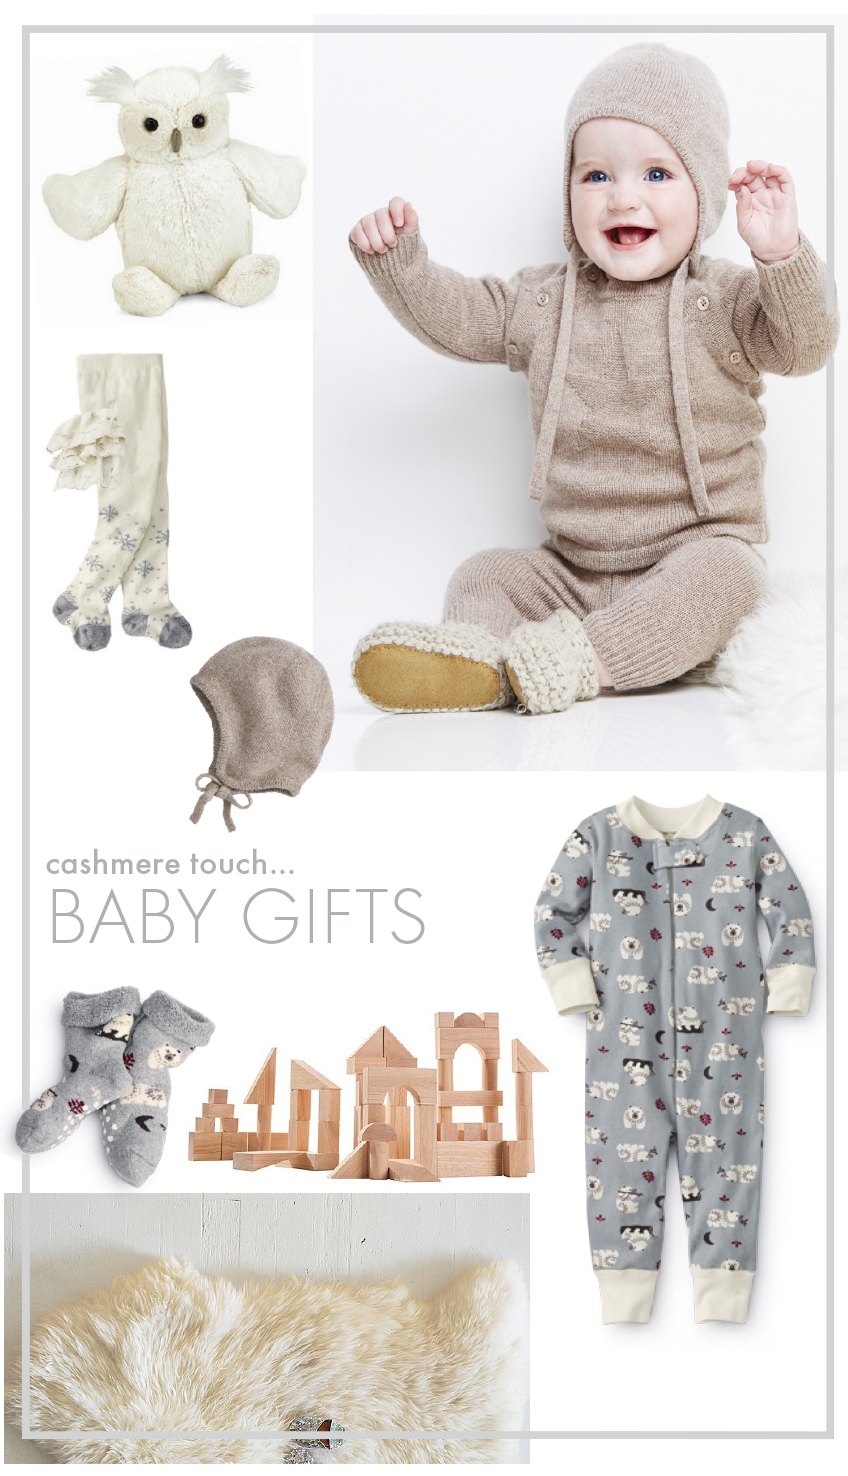 Baby Soft Sleep Gift Guide - Hanna Andersson